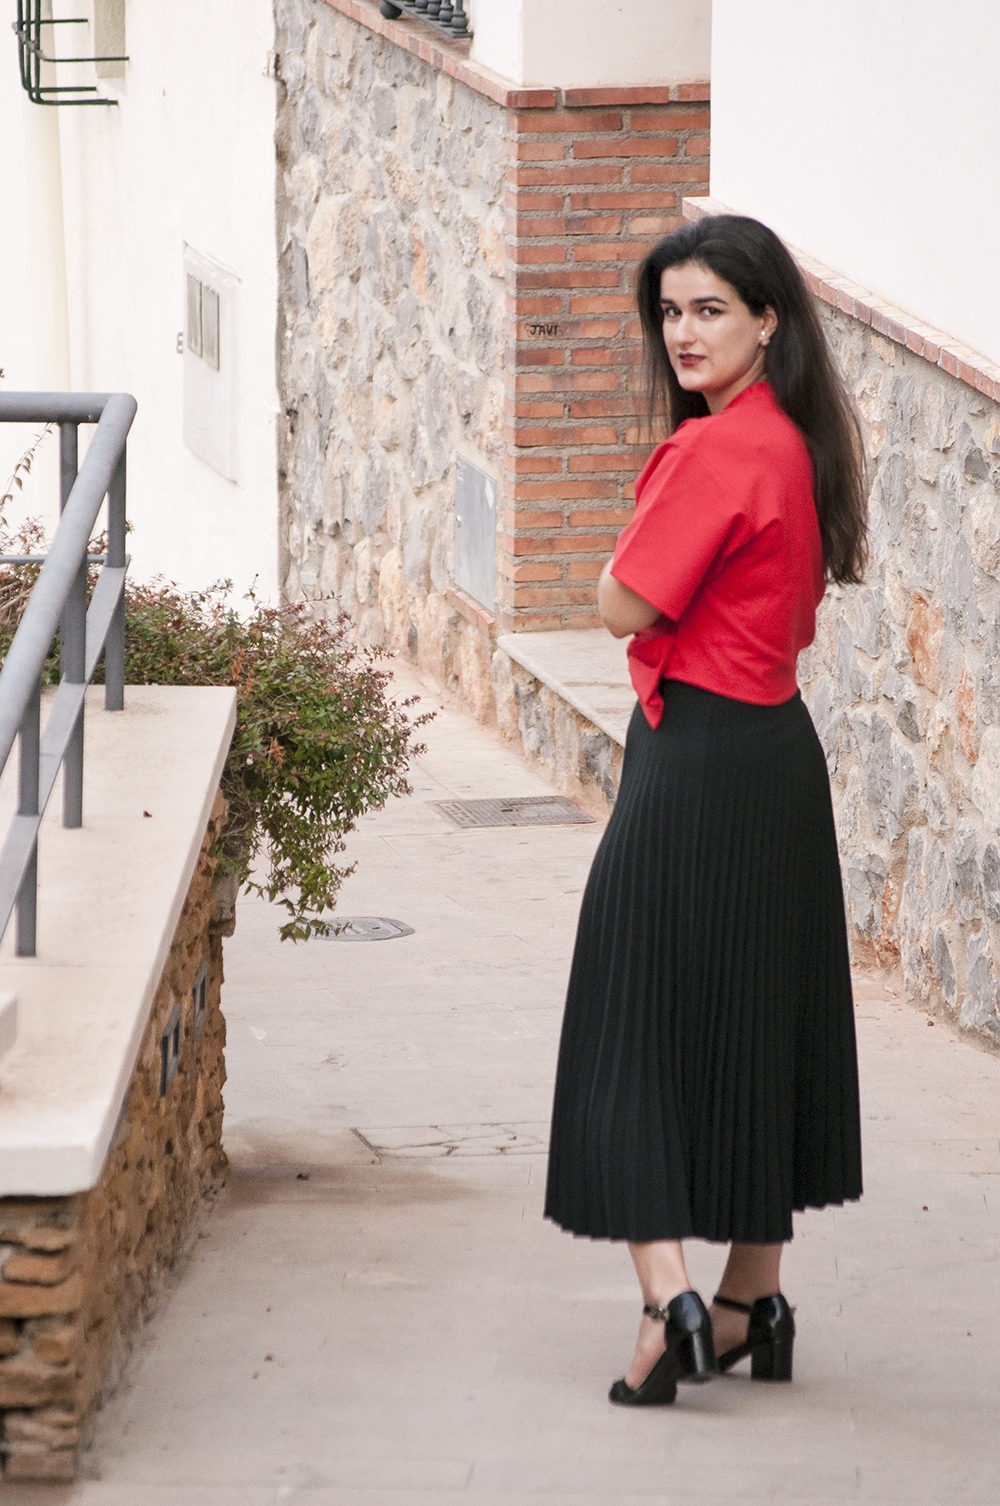 something fashion blogger influencer valencia spain, outfit kimono crop top red lightinthebox summer pleated black skirt fashion how to wear